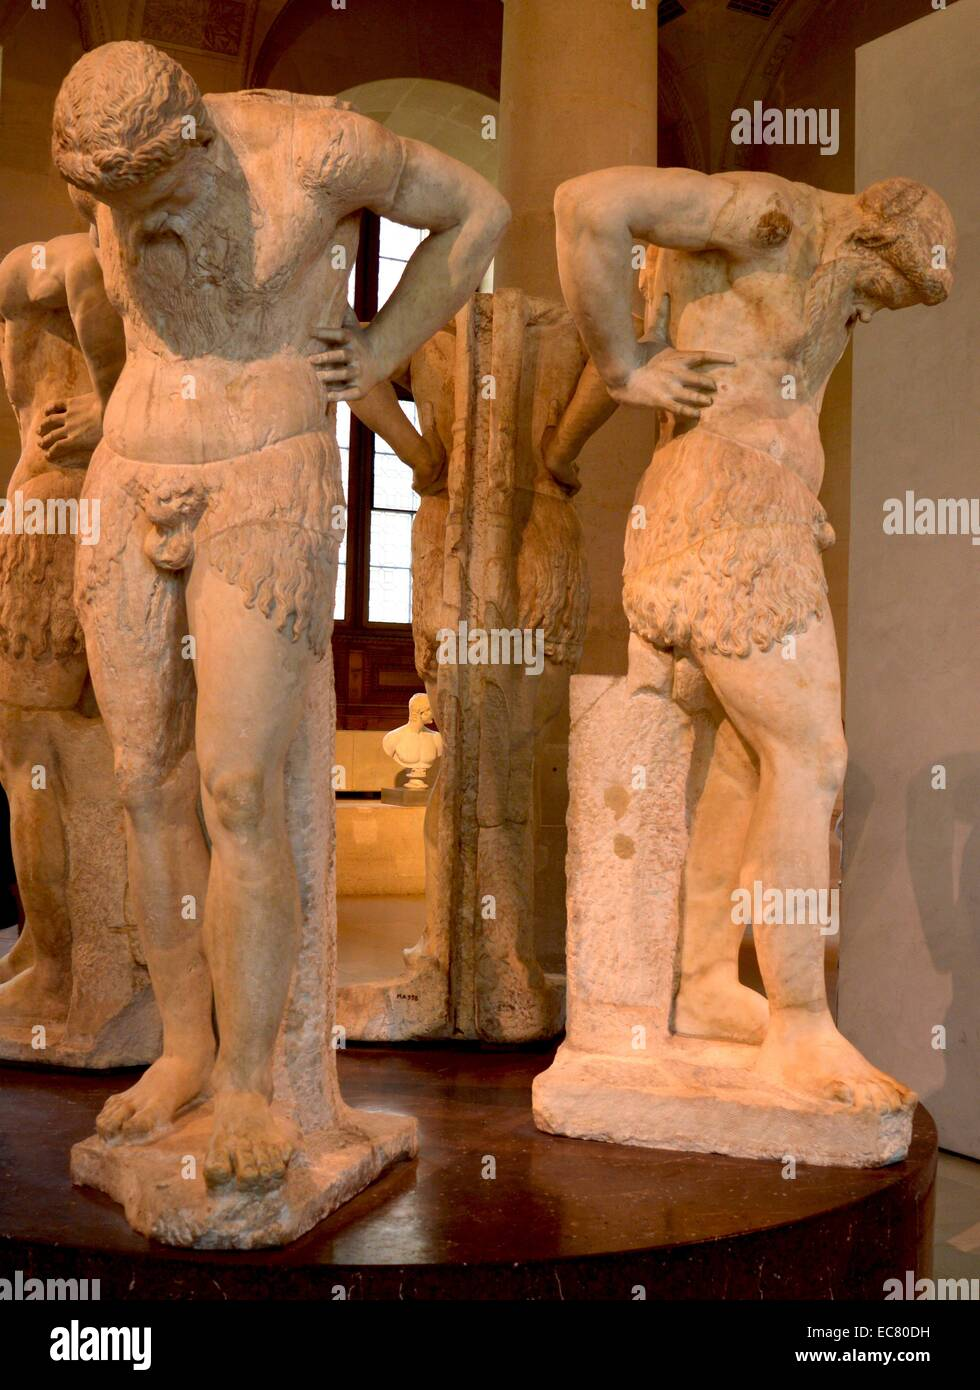 Marble group statue depicting the Satyrs of Atlantis, Roman, 1st Century BC - Stock Image